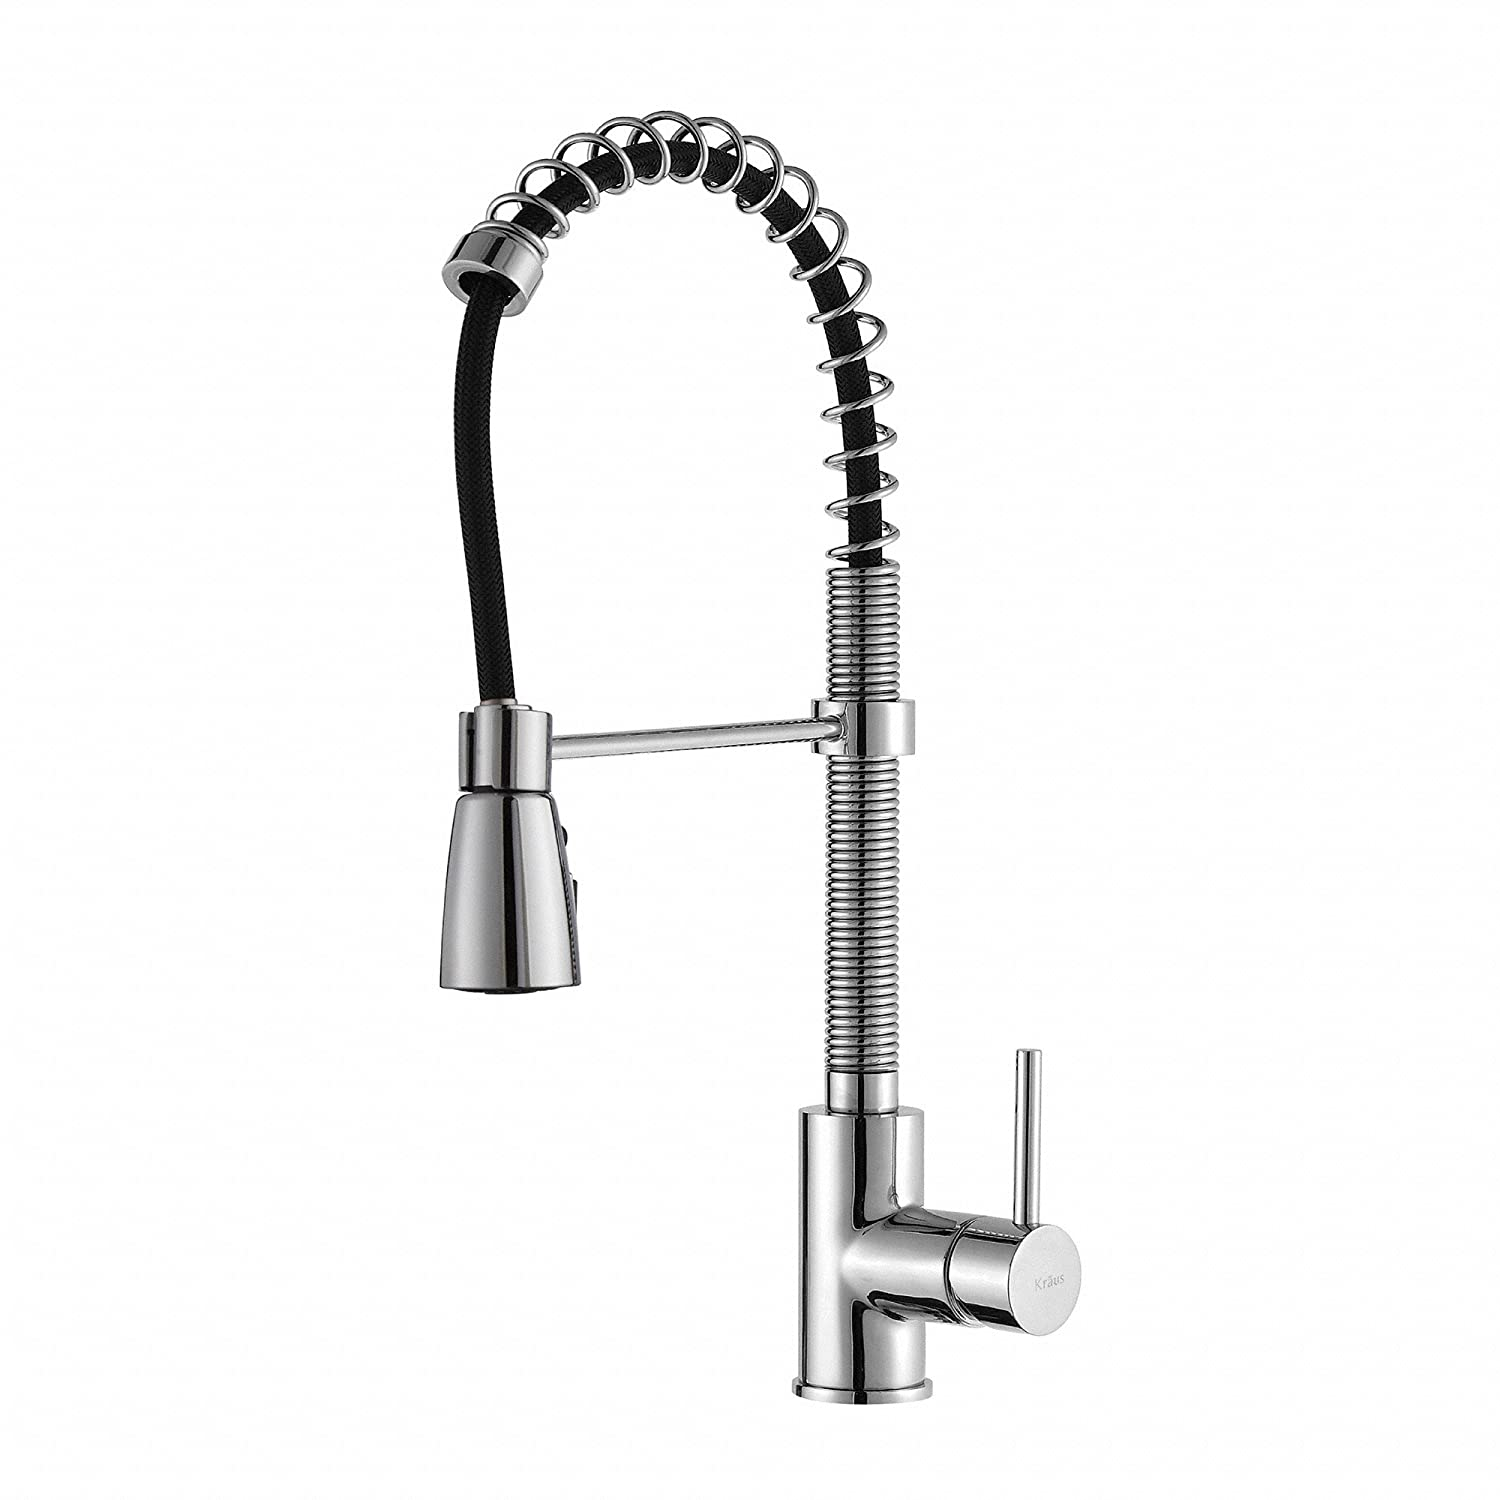 overstock handle free sprayer single chrome product stainless in kitchen home with faucet steel dual faucets garden arch down pull high today kraus function shipping